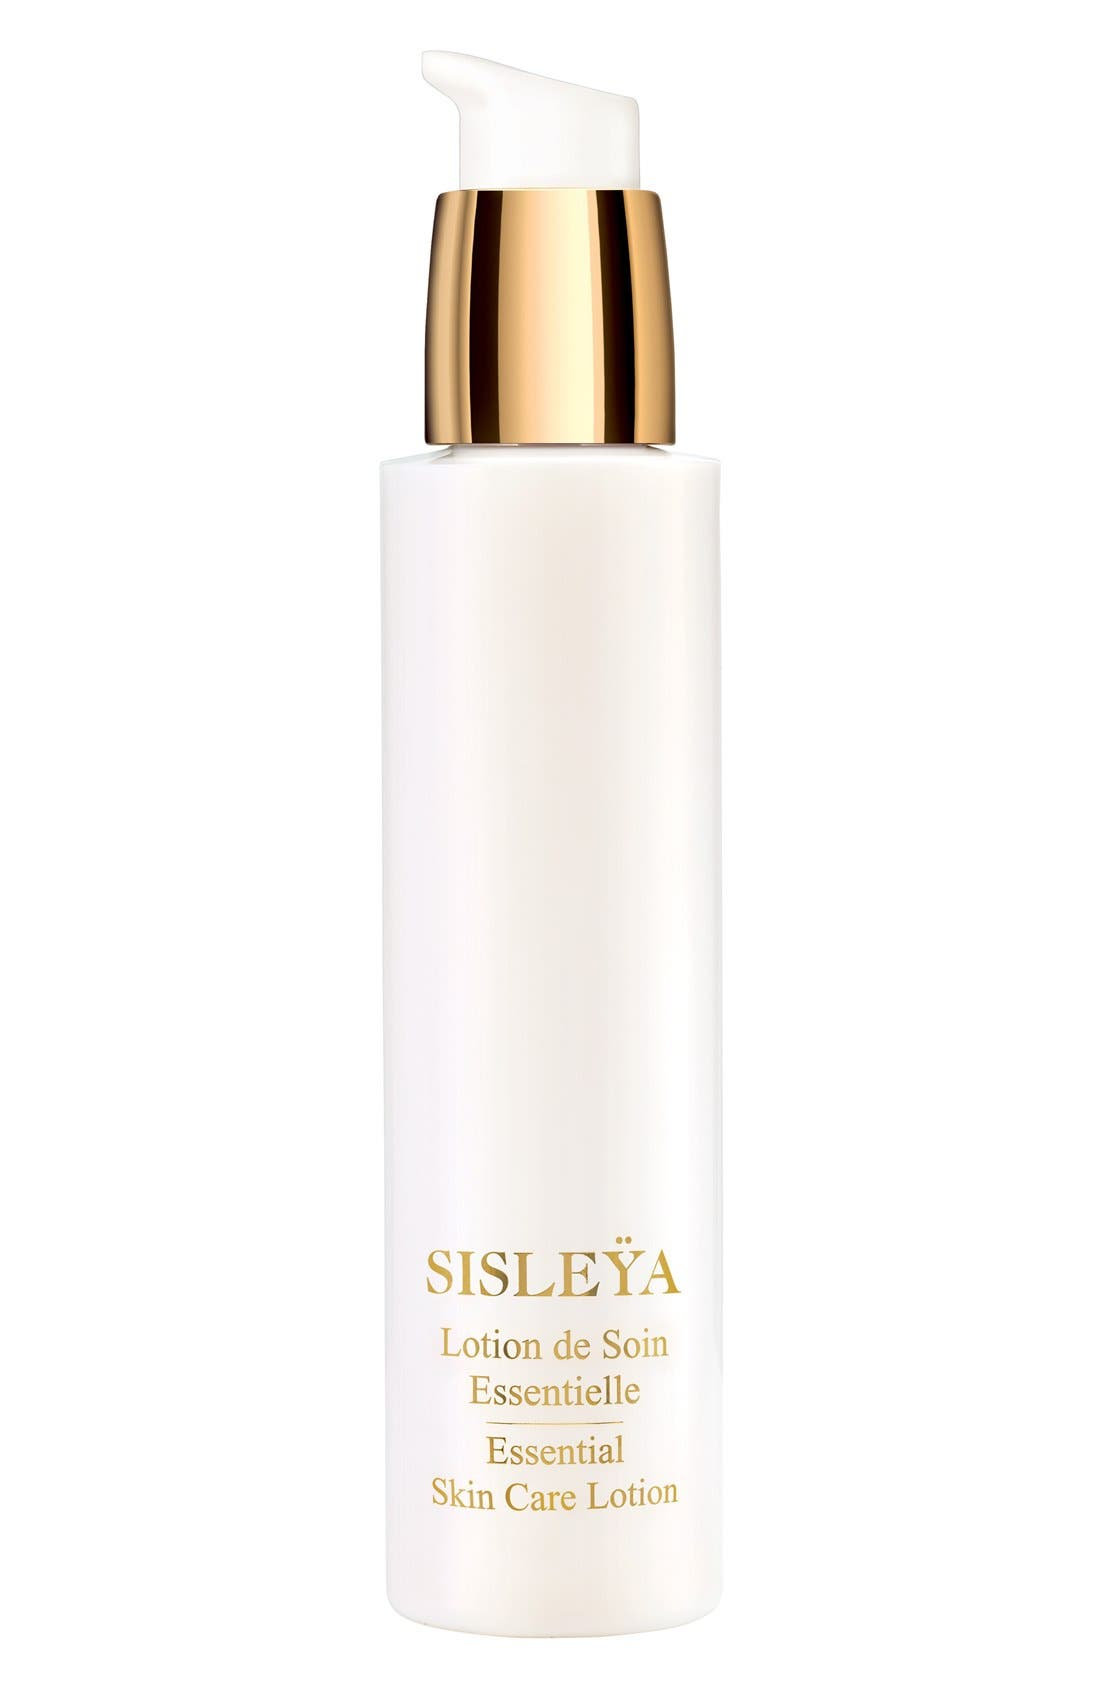 Sisley Paris 'Sisleÿa' Essential Skin Care Lotion